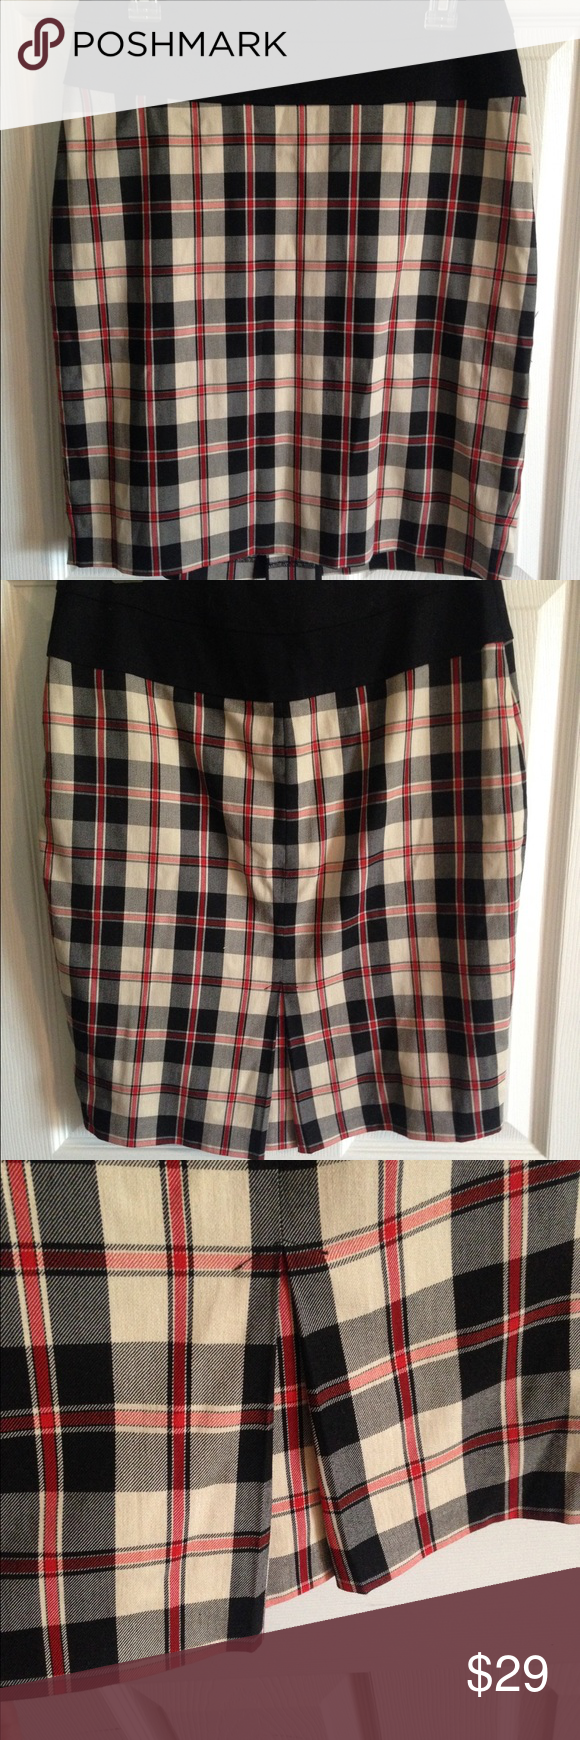 Anthropologie Eva Franco straight skirt, 8 Anthropologie Eva Franco straight skirt, size 8 ivory with black and red stripes. Lined, perfect condition. Side zipper Eva Franco Skirts Pencil